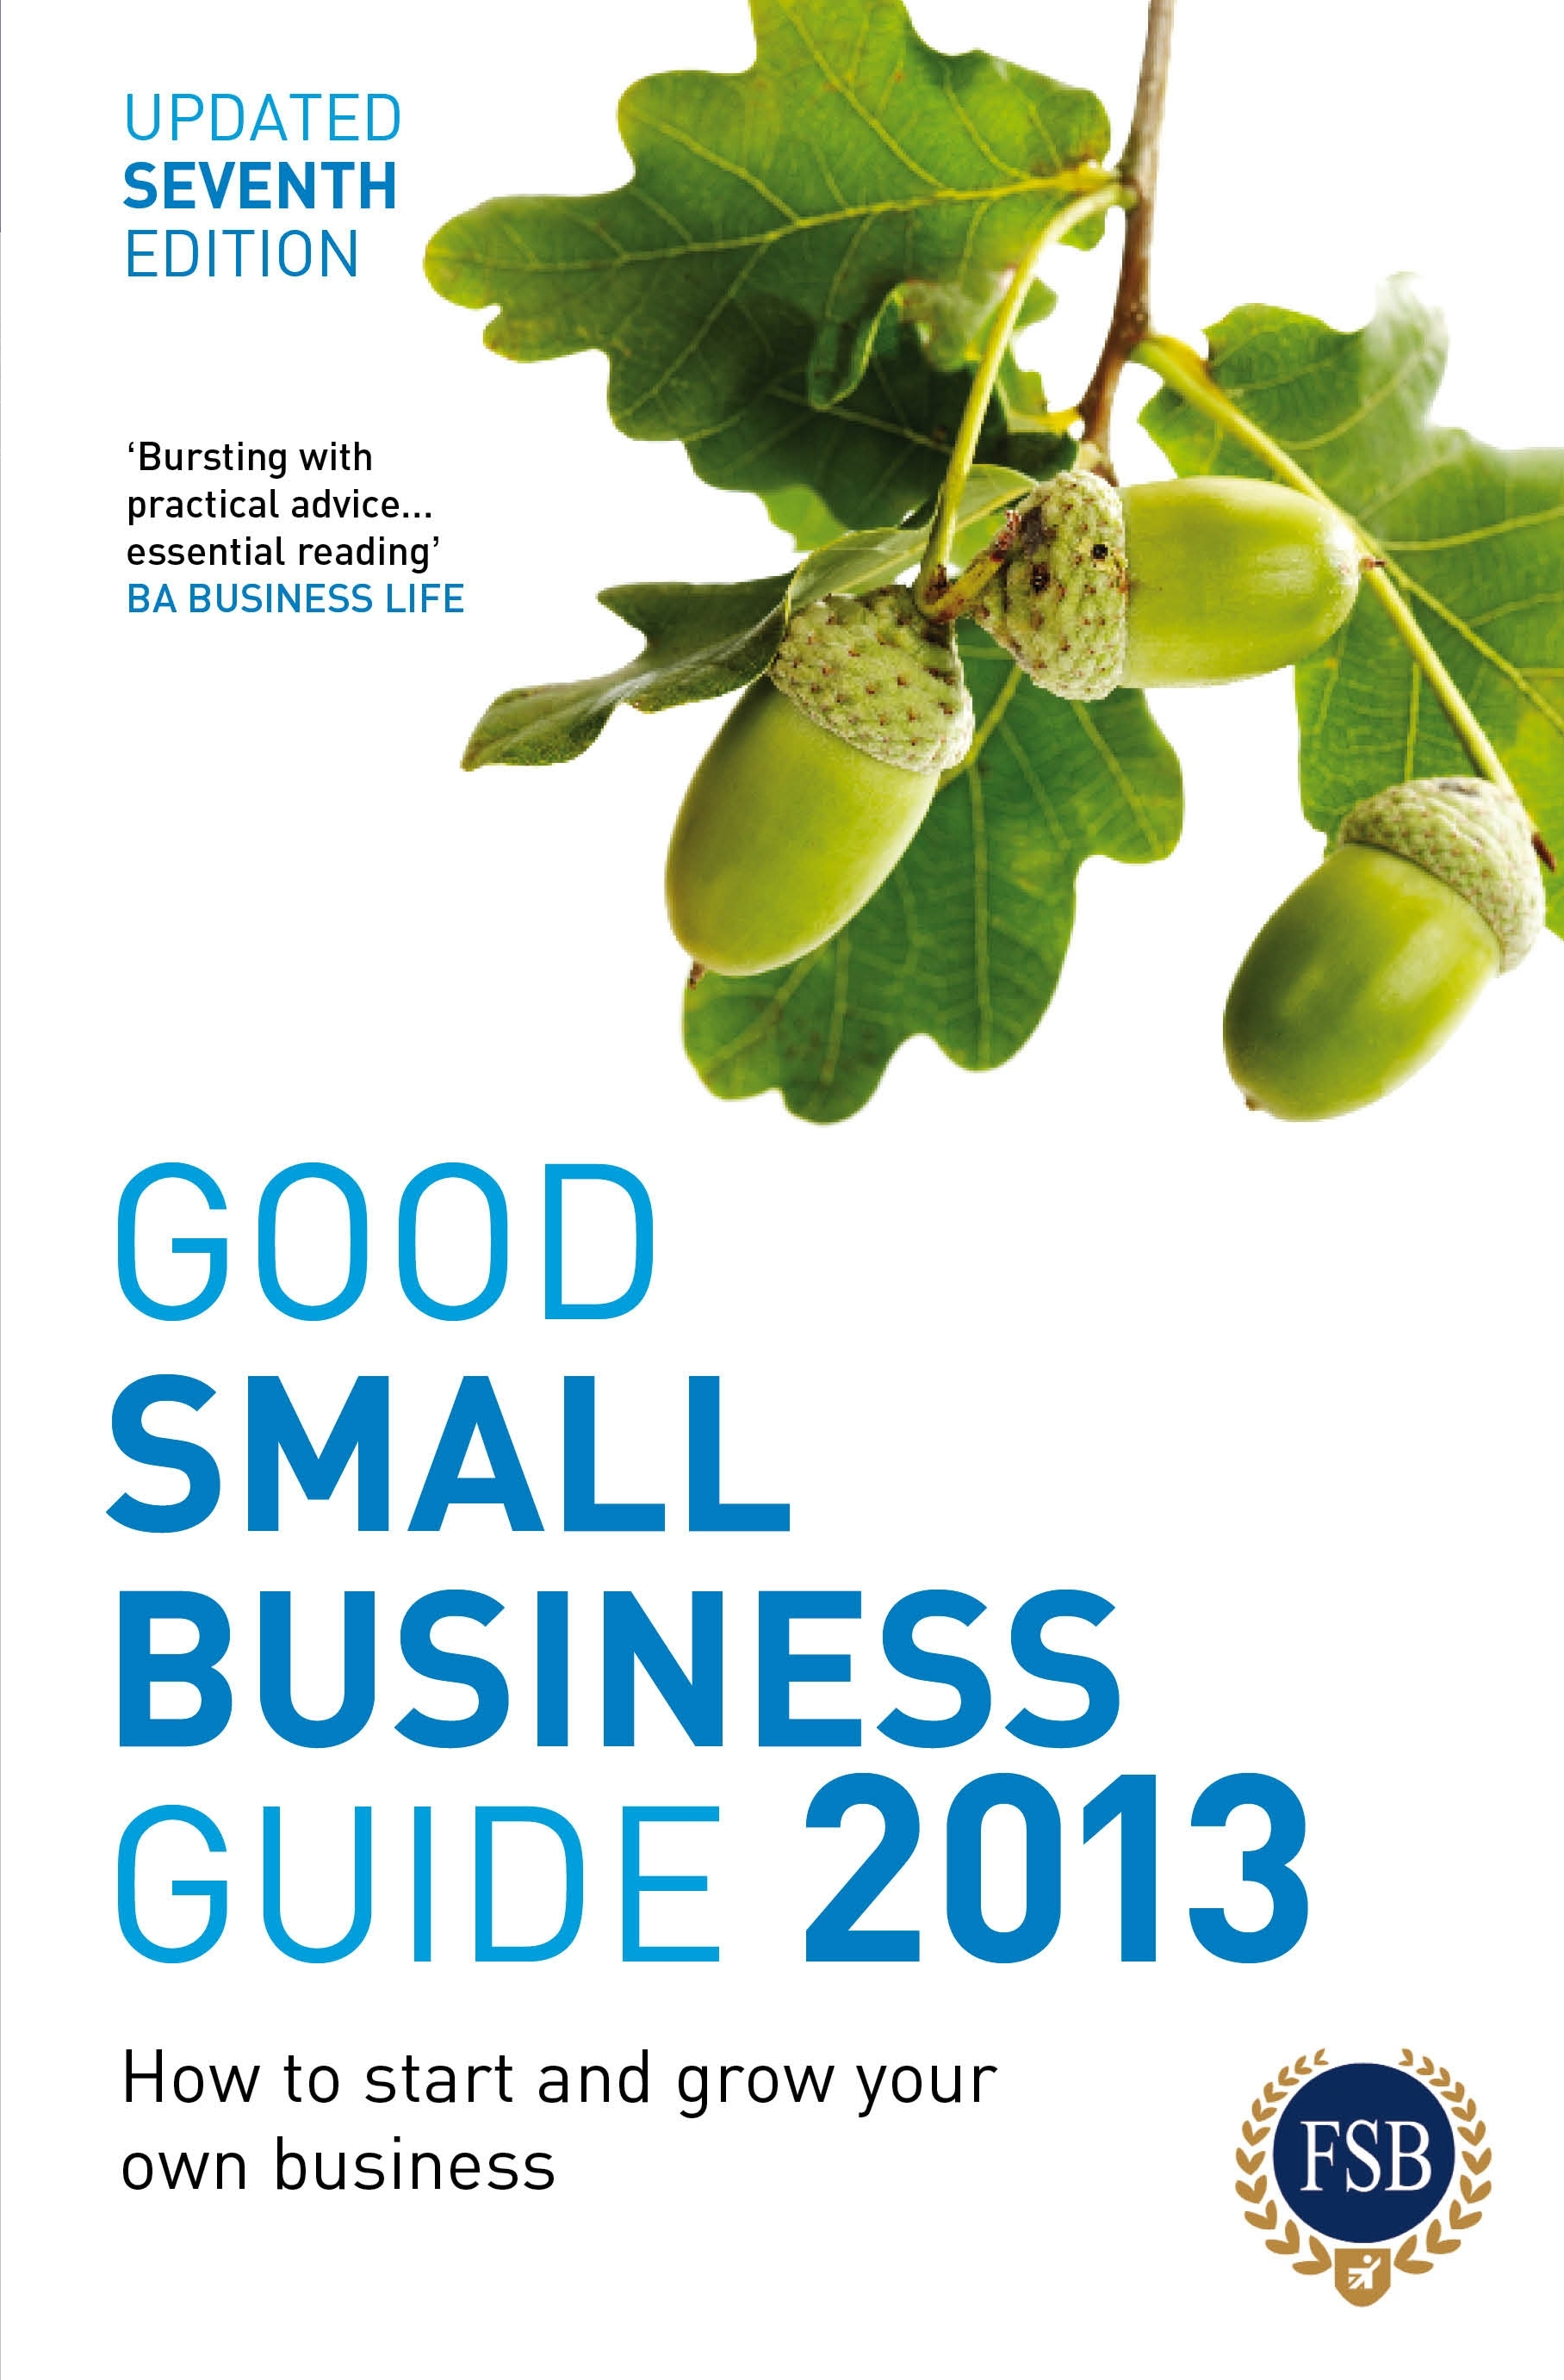 Good Small Business Guide 2013,  7th Edition How to start and grow your own business